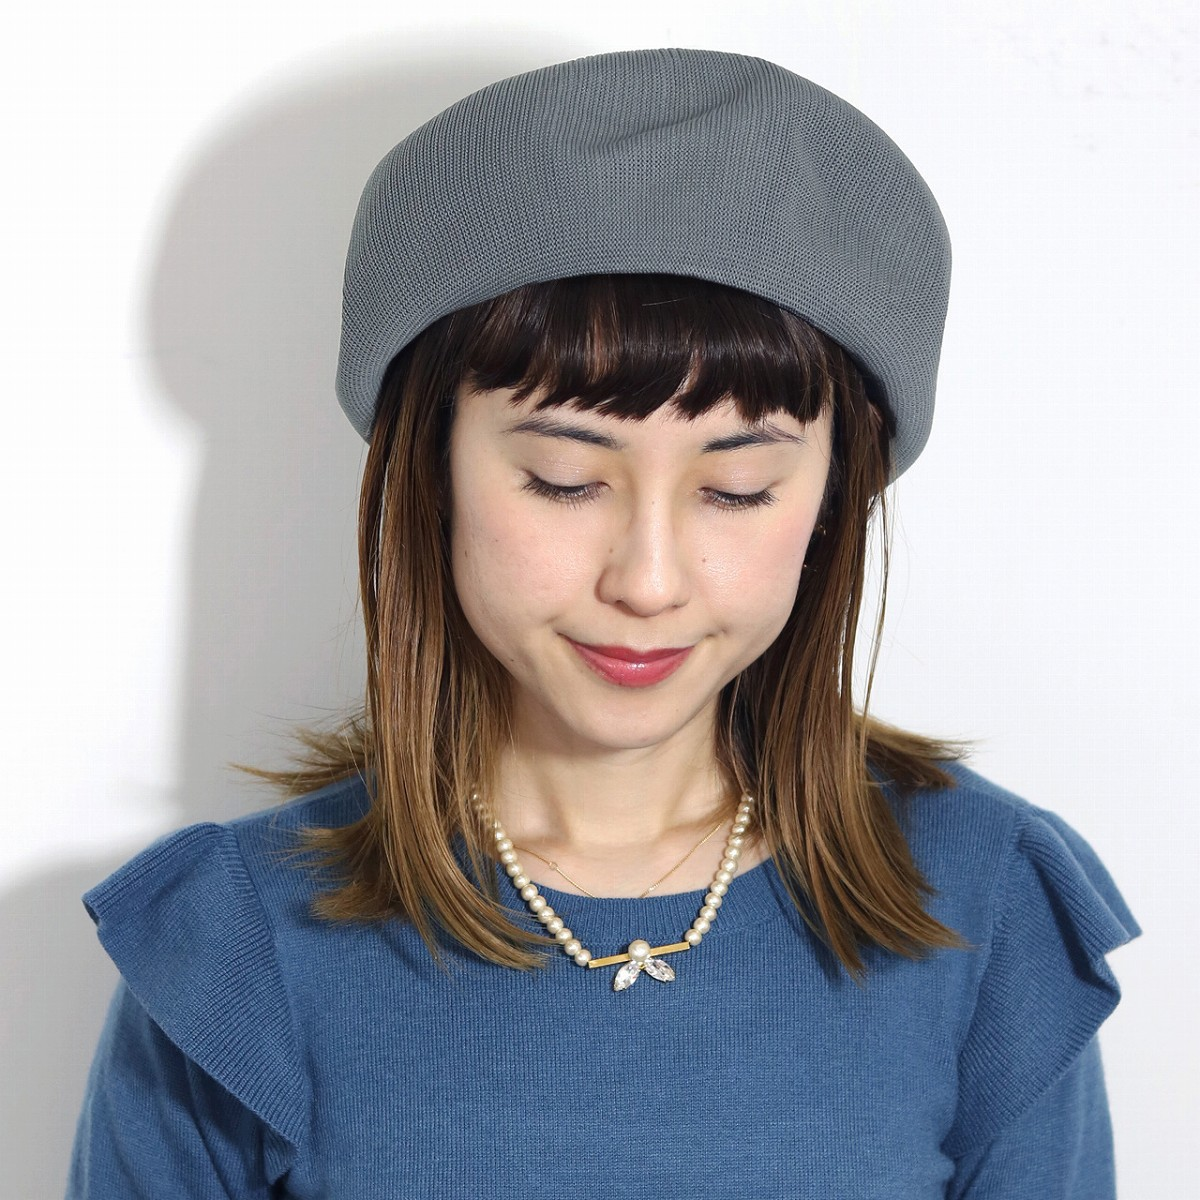 ... Product made in beret Lady s hat size grain loose silhouette beret  summer knit knit beret plain ... 127197be8df